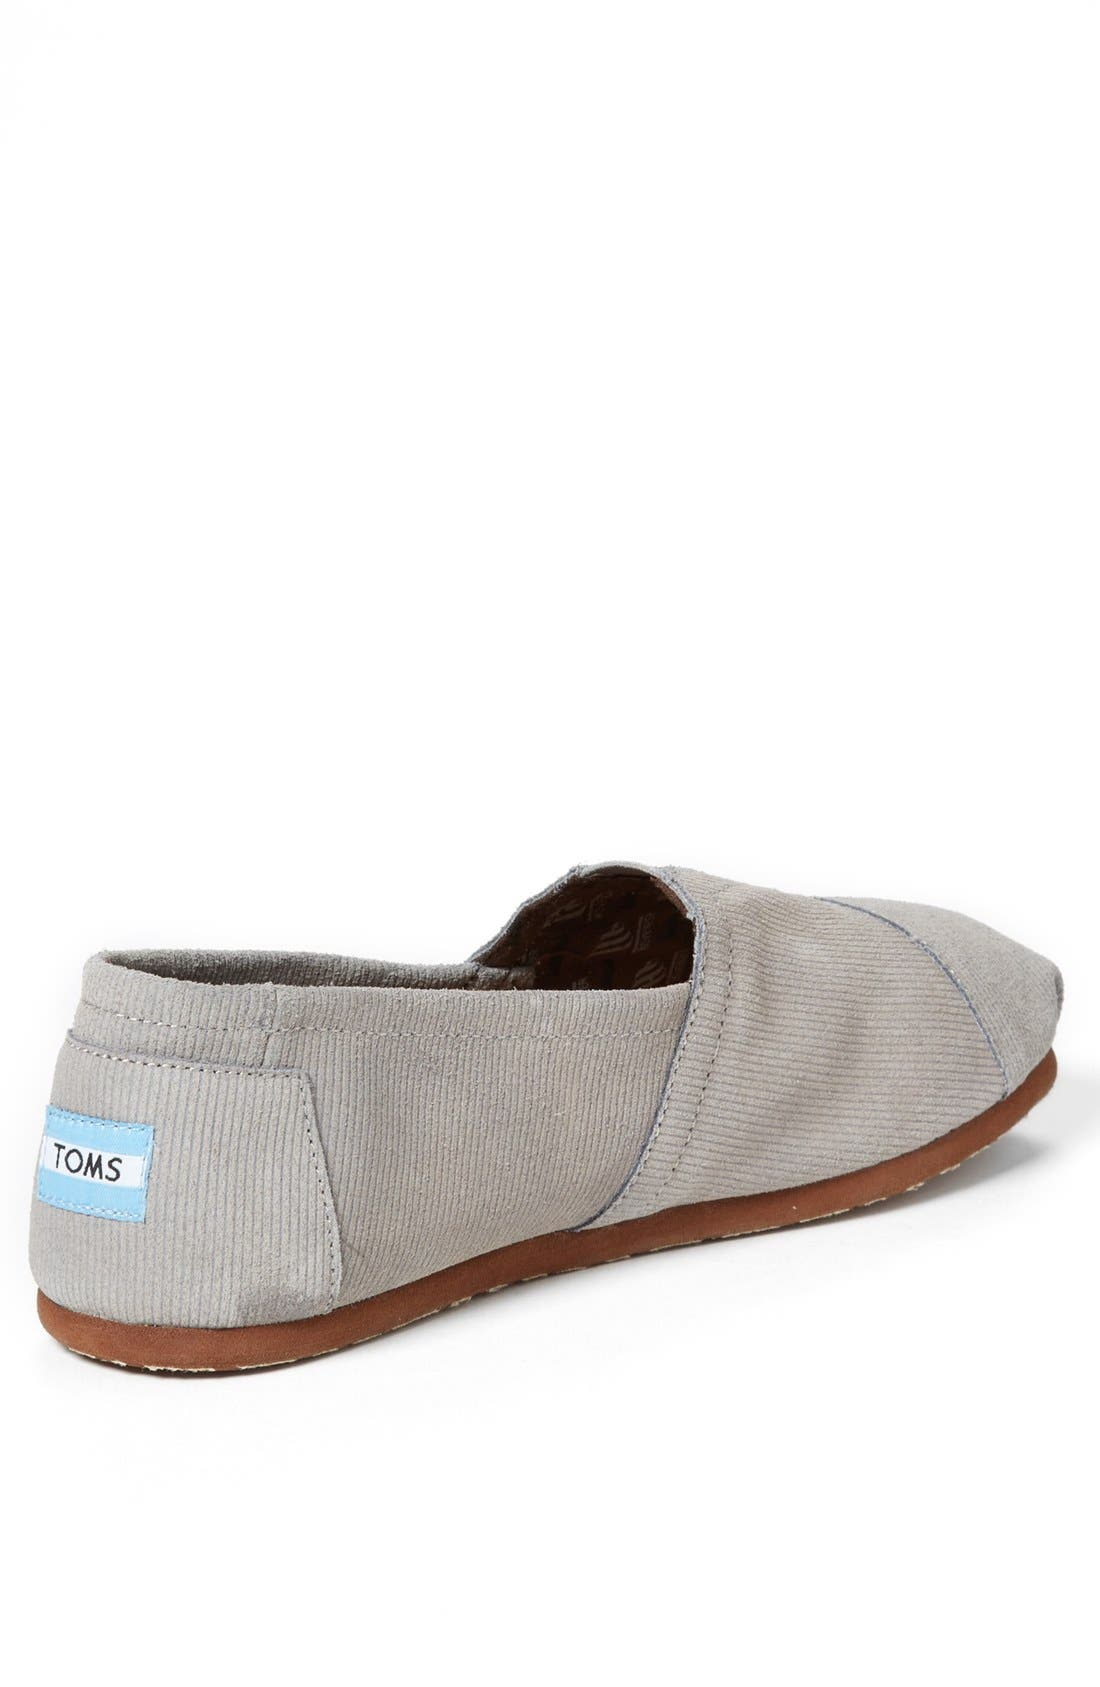 Alternate Image 2  - TOMS 'Movember Classic' Slip-On (Men) (Limited Edition - Movember)